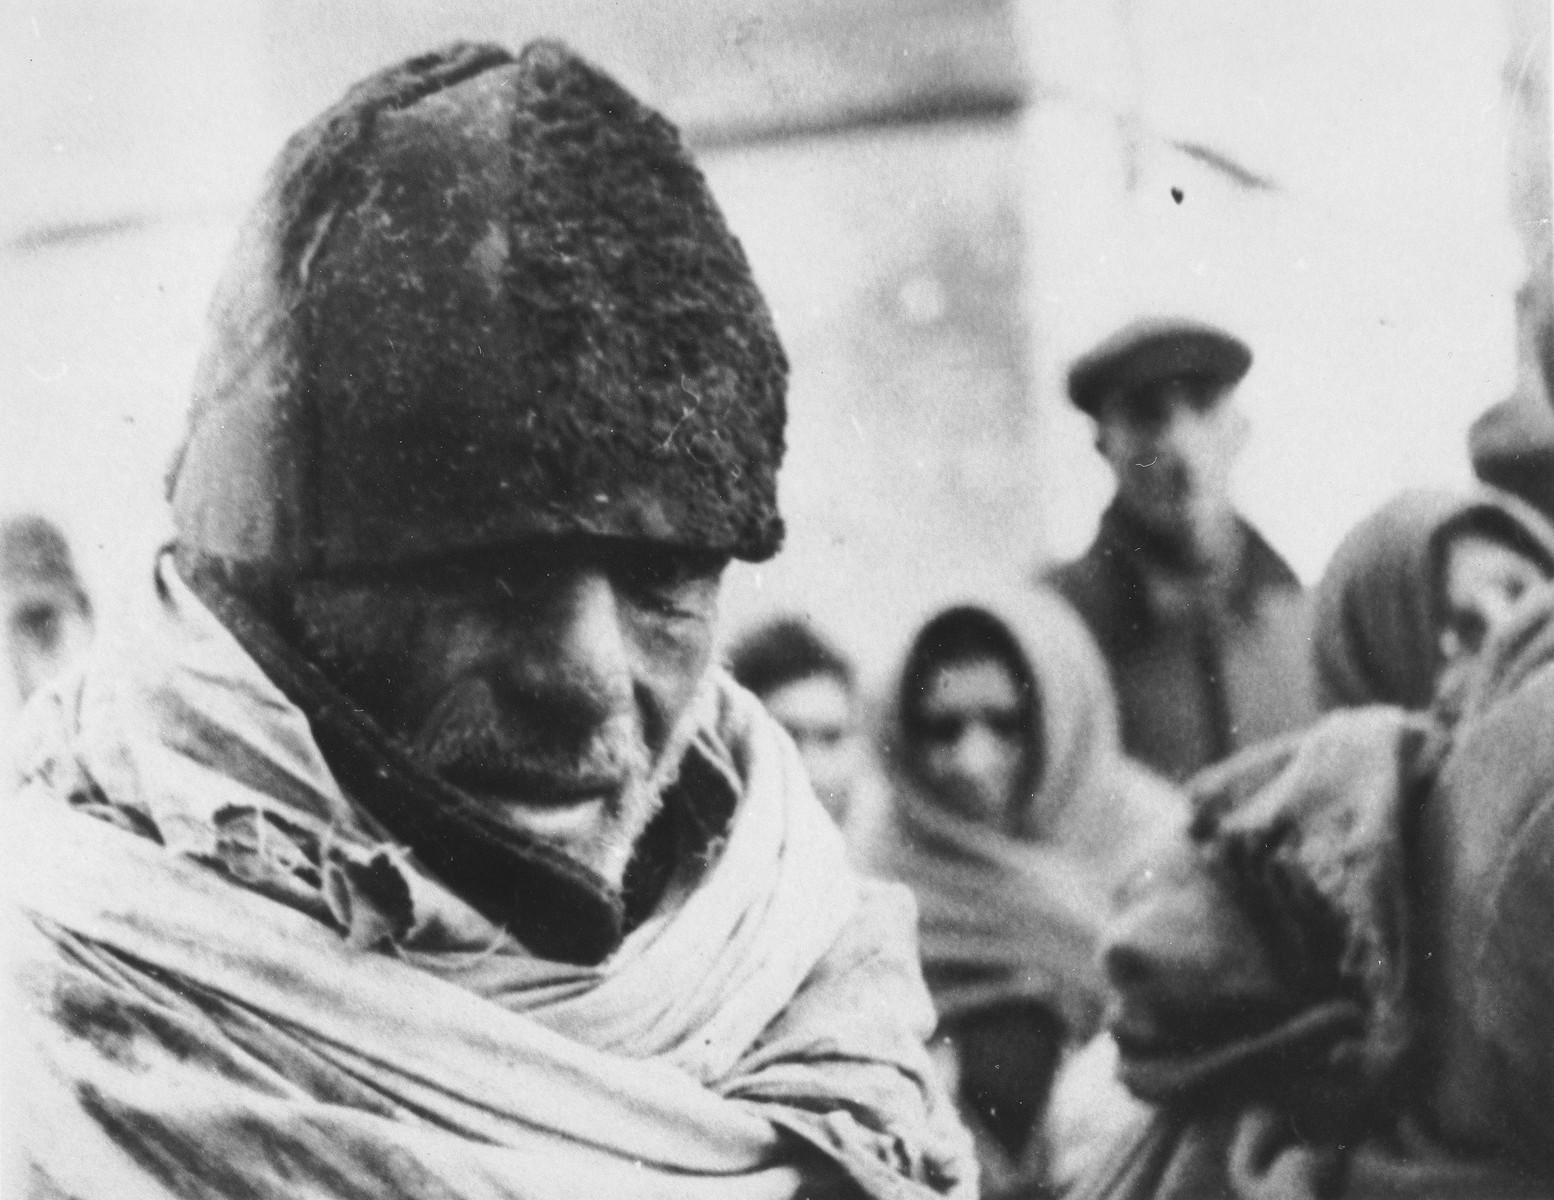 Close-up of a Jewish man wearing a fur cap on a street in an unidentified ghetto.